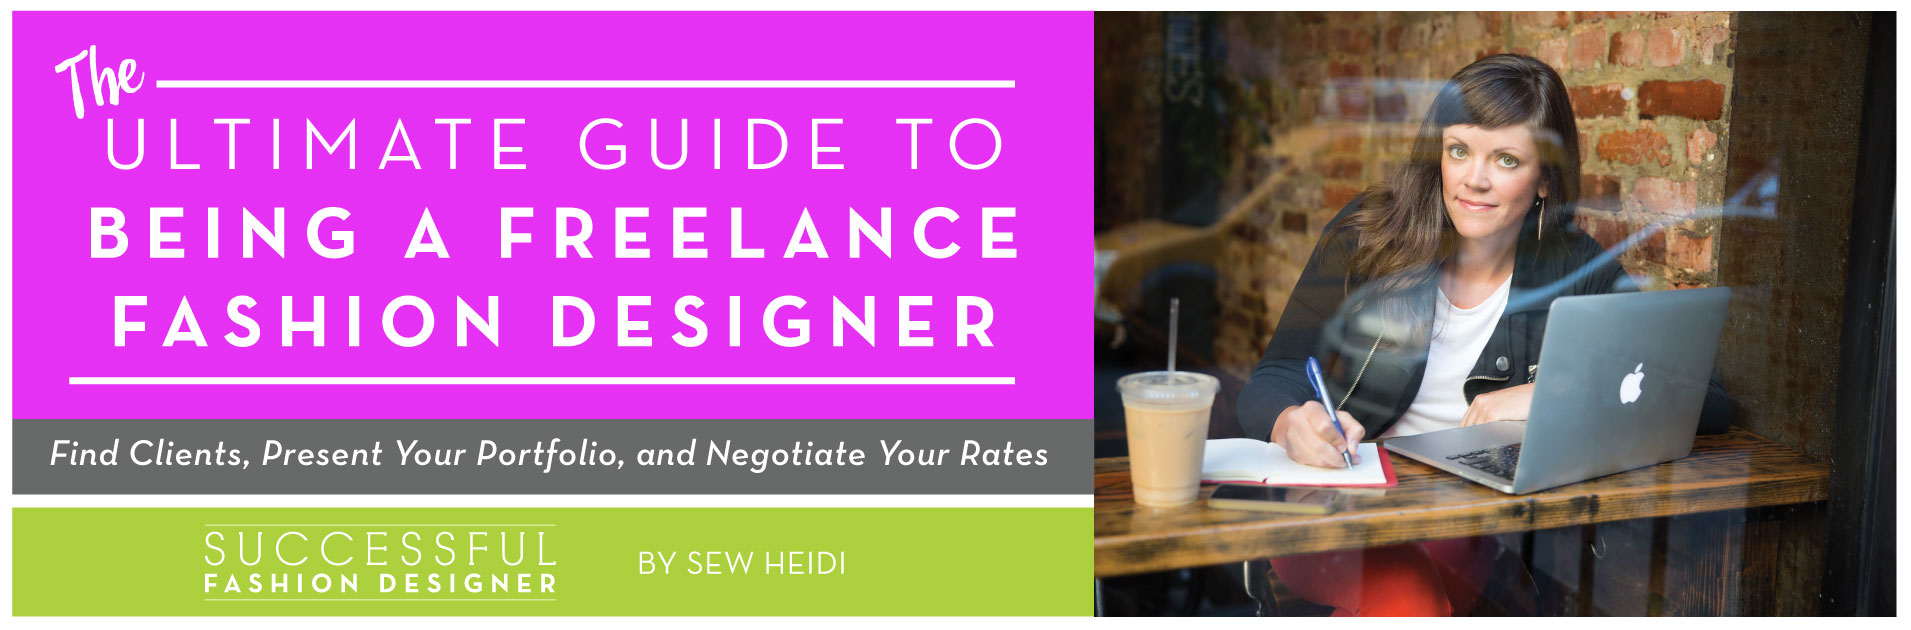 How to Be a Freelance Fashion Designer: The Ultimate Guide by Sew Heidi